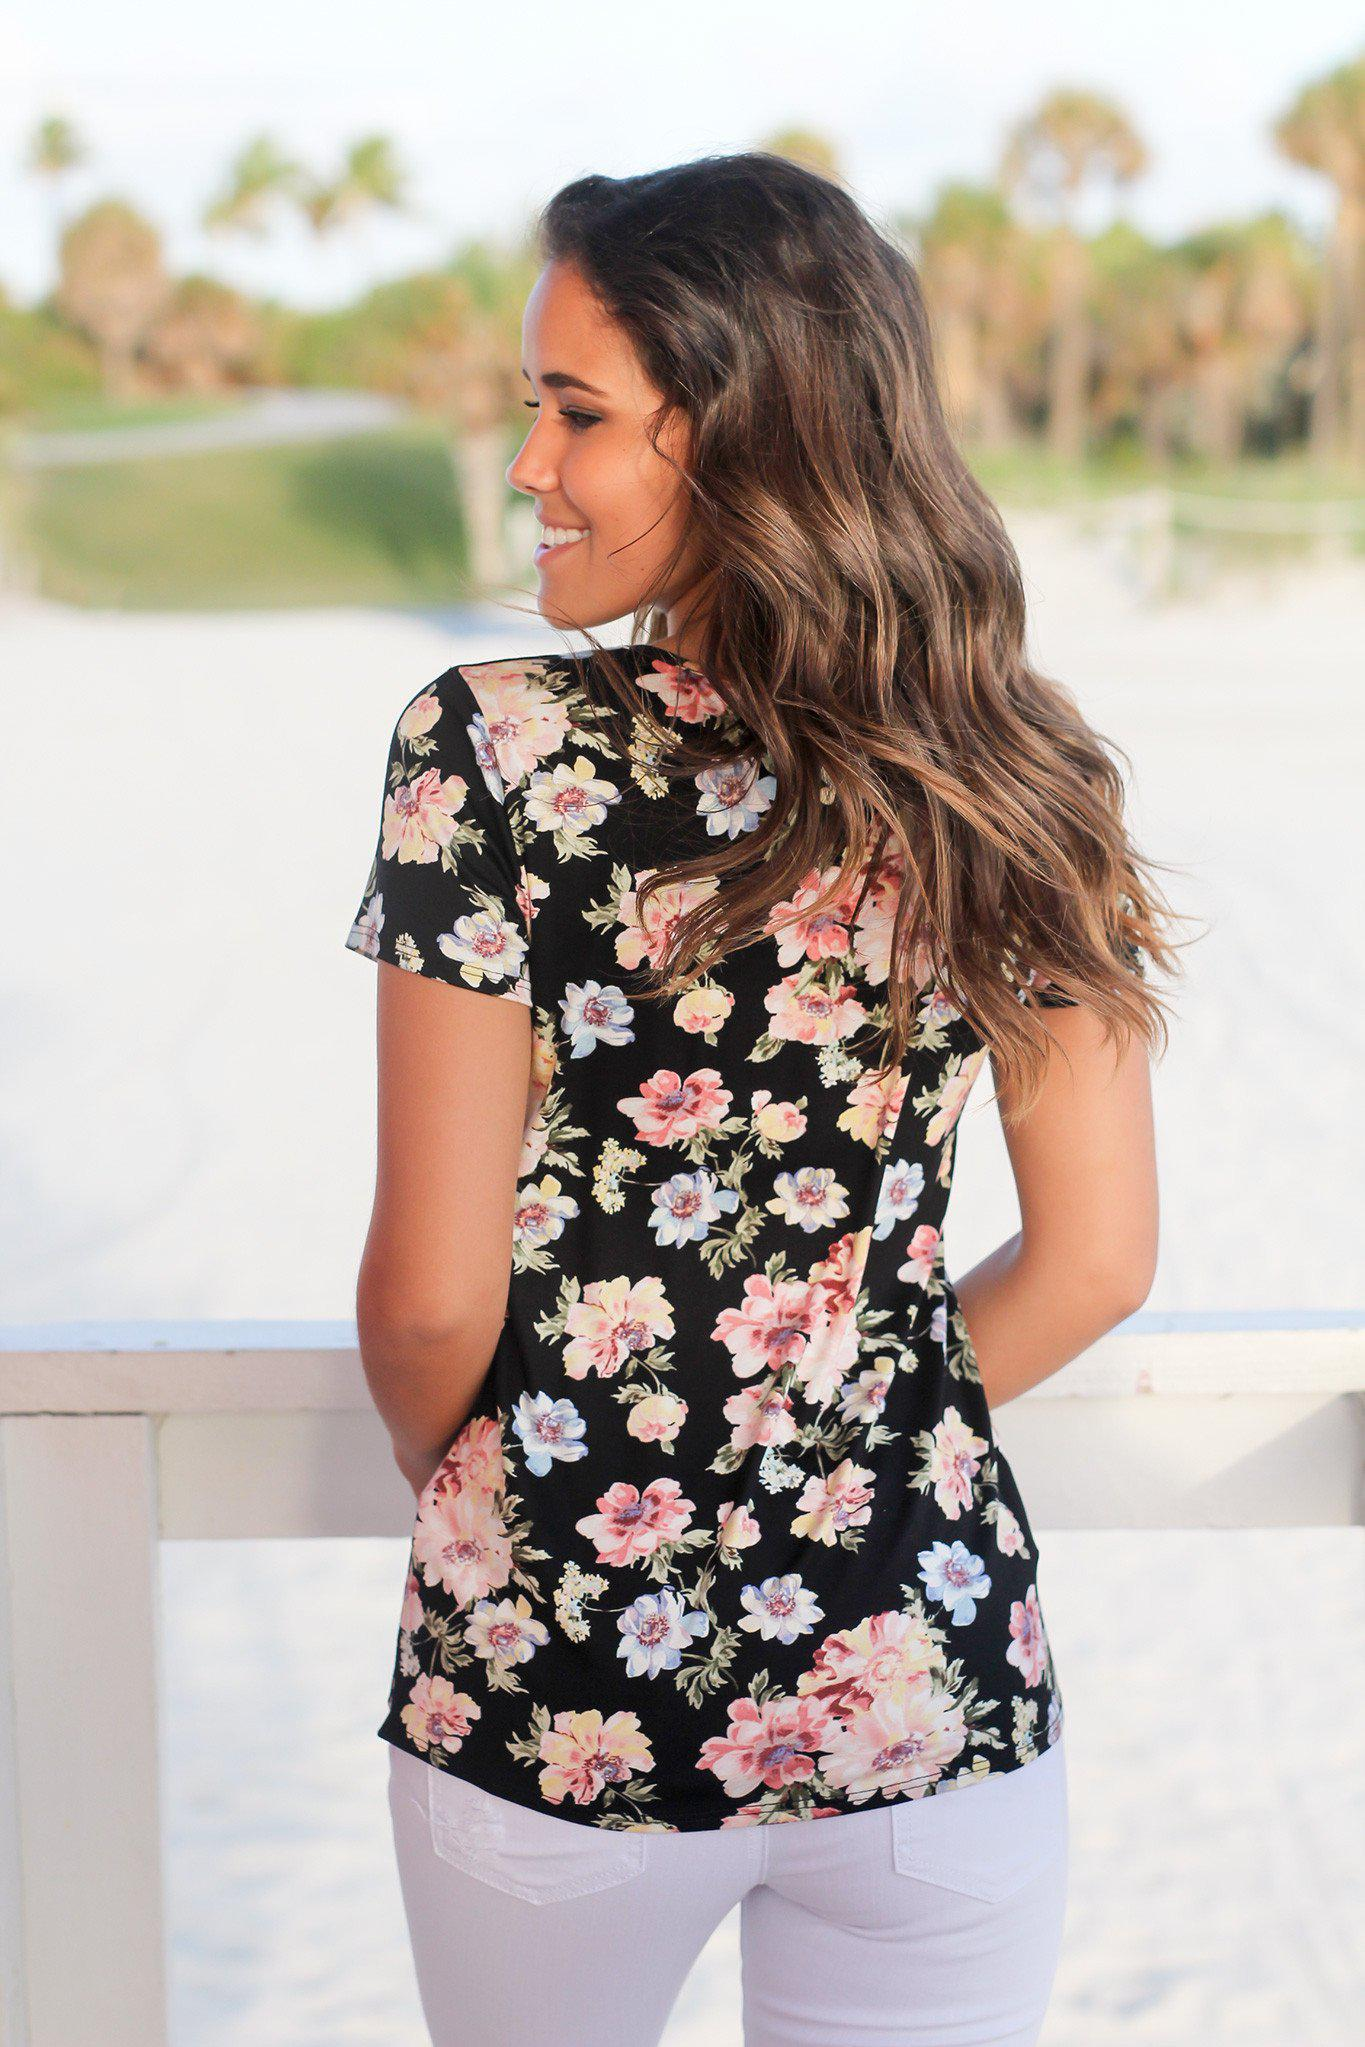 Black Floral Criss Cross Top with Short Sleeves